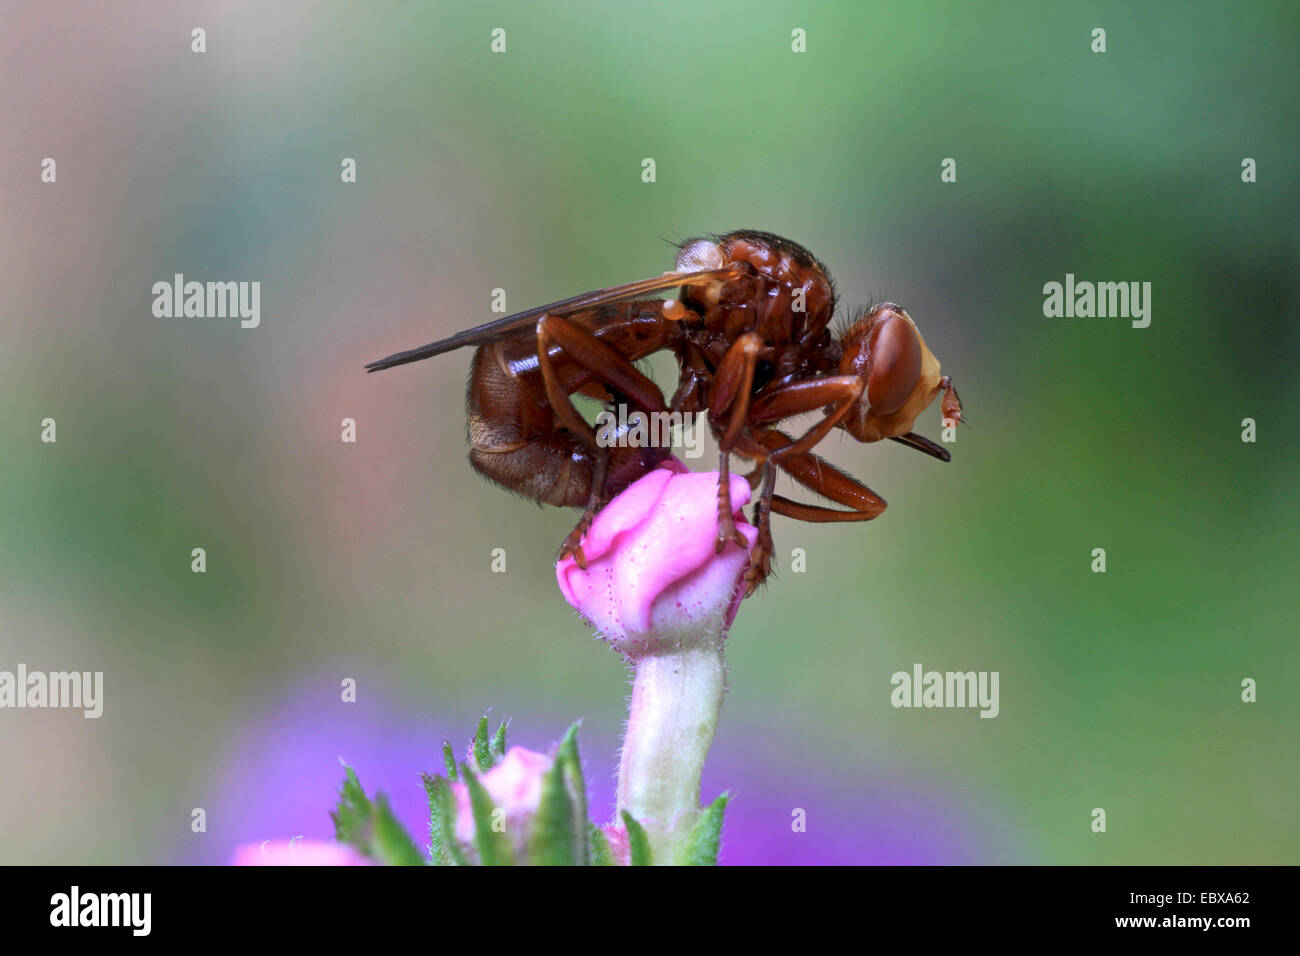 thick-headed flies (Conopidae), on a flower bud, Germany - Stock Image